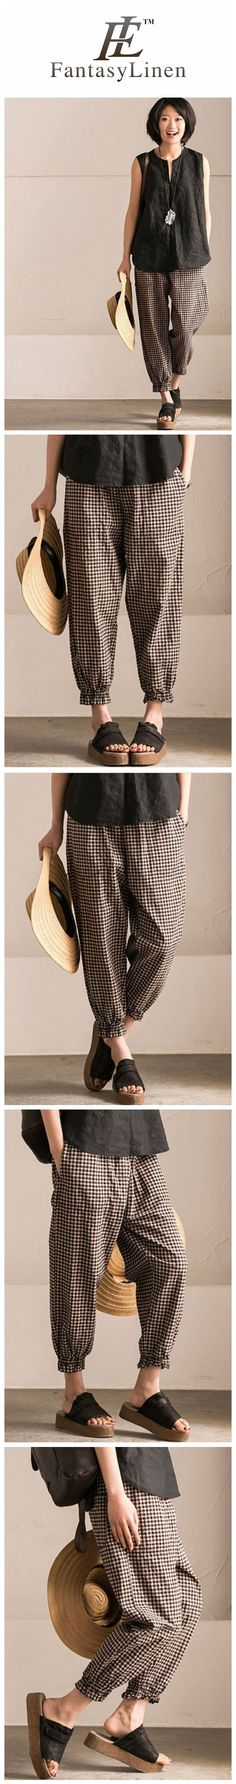 Art Casual Black White Grid Pants Cotton Women Clothes Clothes will not shrink,loose Cotton fabric, soft to the touch.*Material: Cotton colour*Model size: Height/Weight: 169 cm kg Linen Trousers, Pants For Women, Clothes For Women, Fashion Outfits, Womens Fashion, Latest Fashion, Fashion Trends, Mode Inspiration, Clothing Patterns